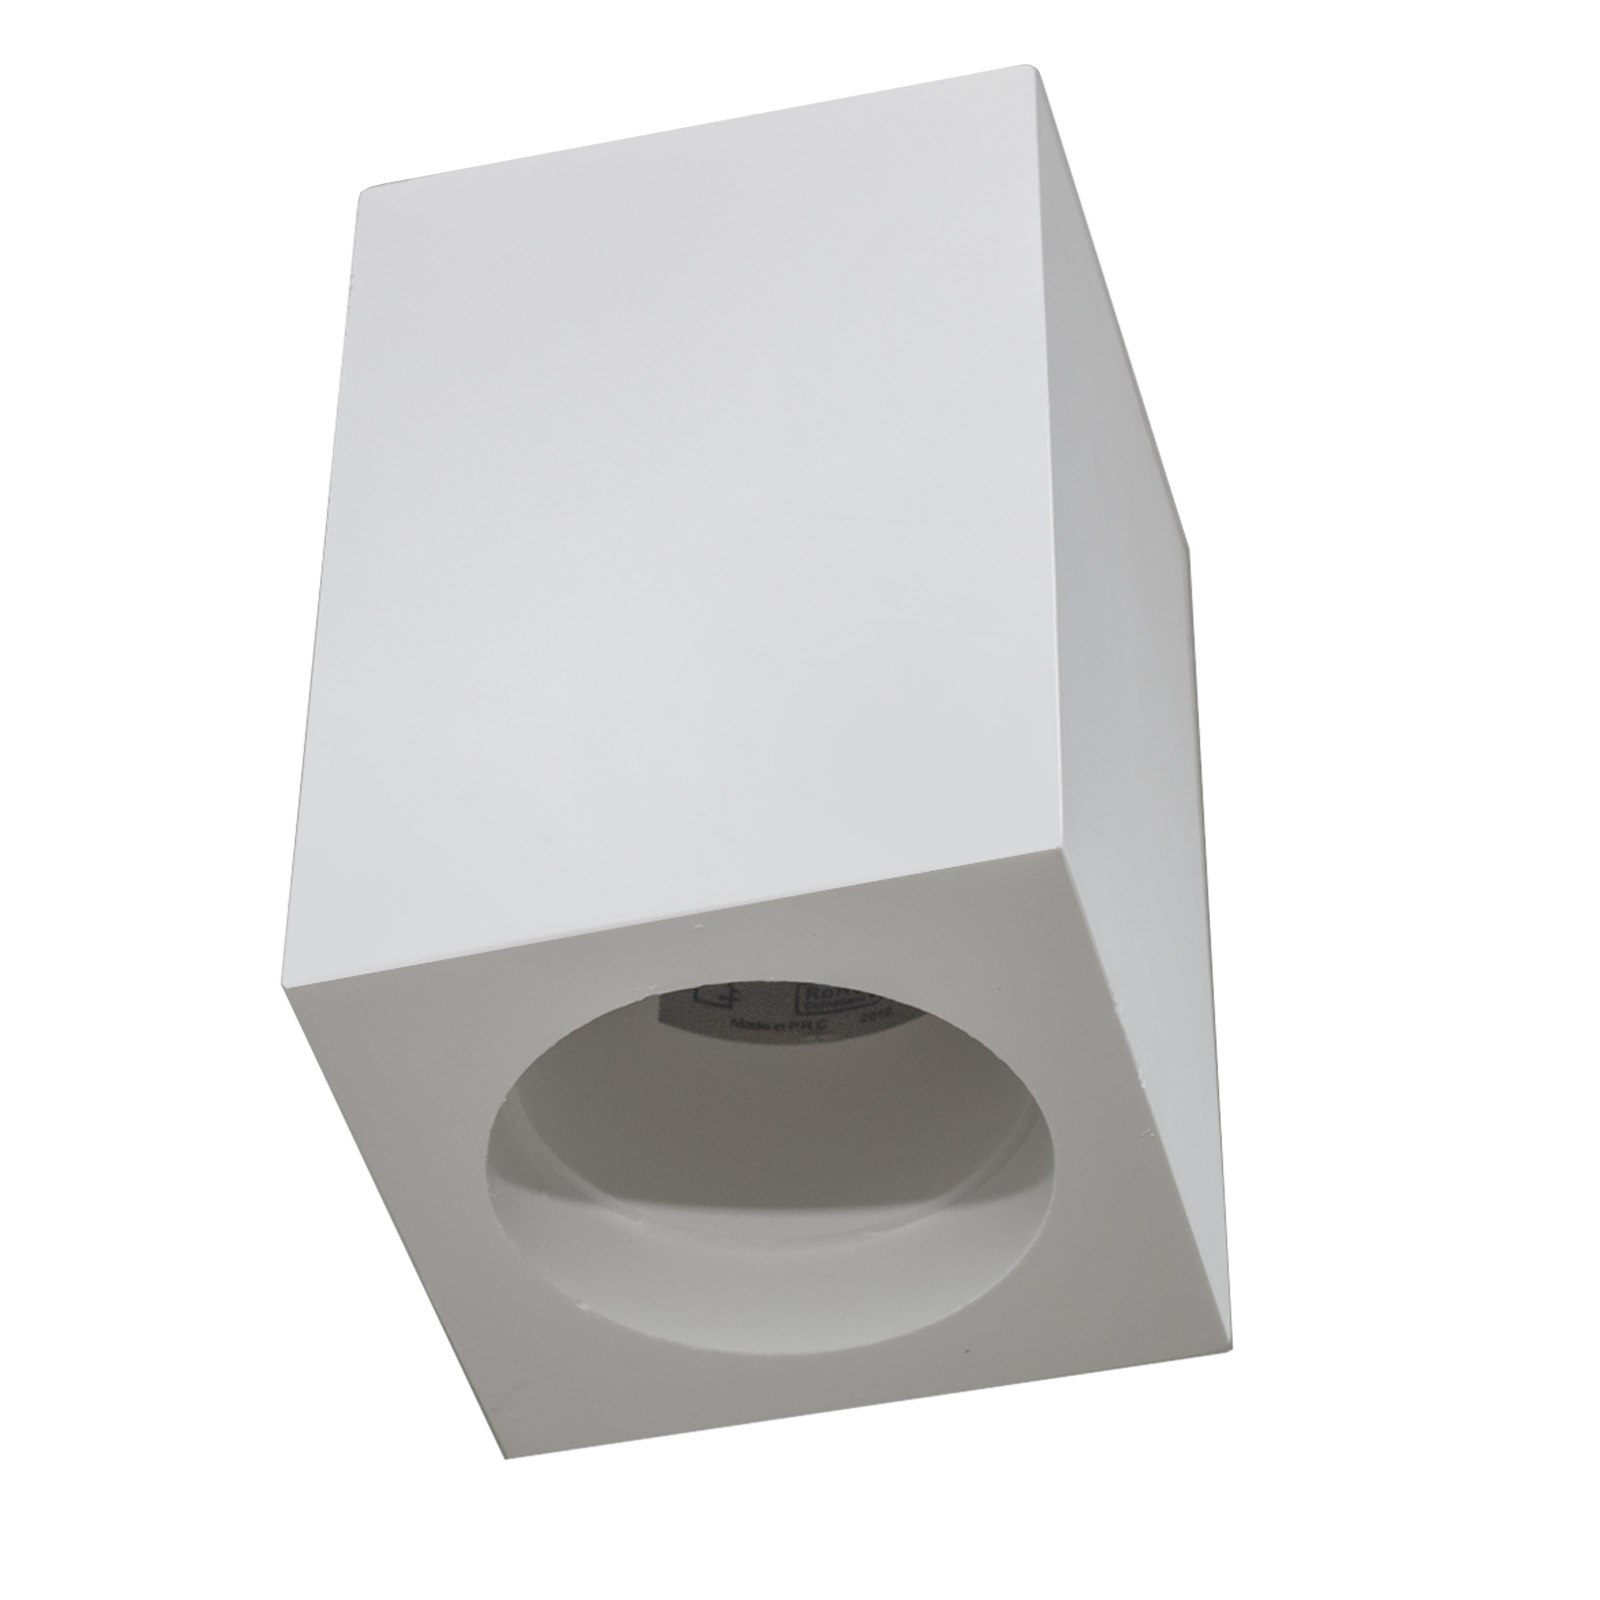 Square door spotlight GU10 ceiling light plaster interior shop ceiling 230V